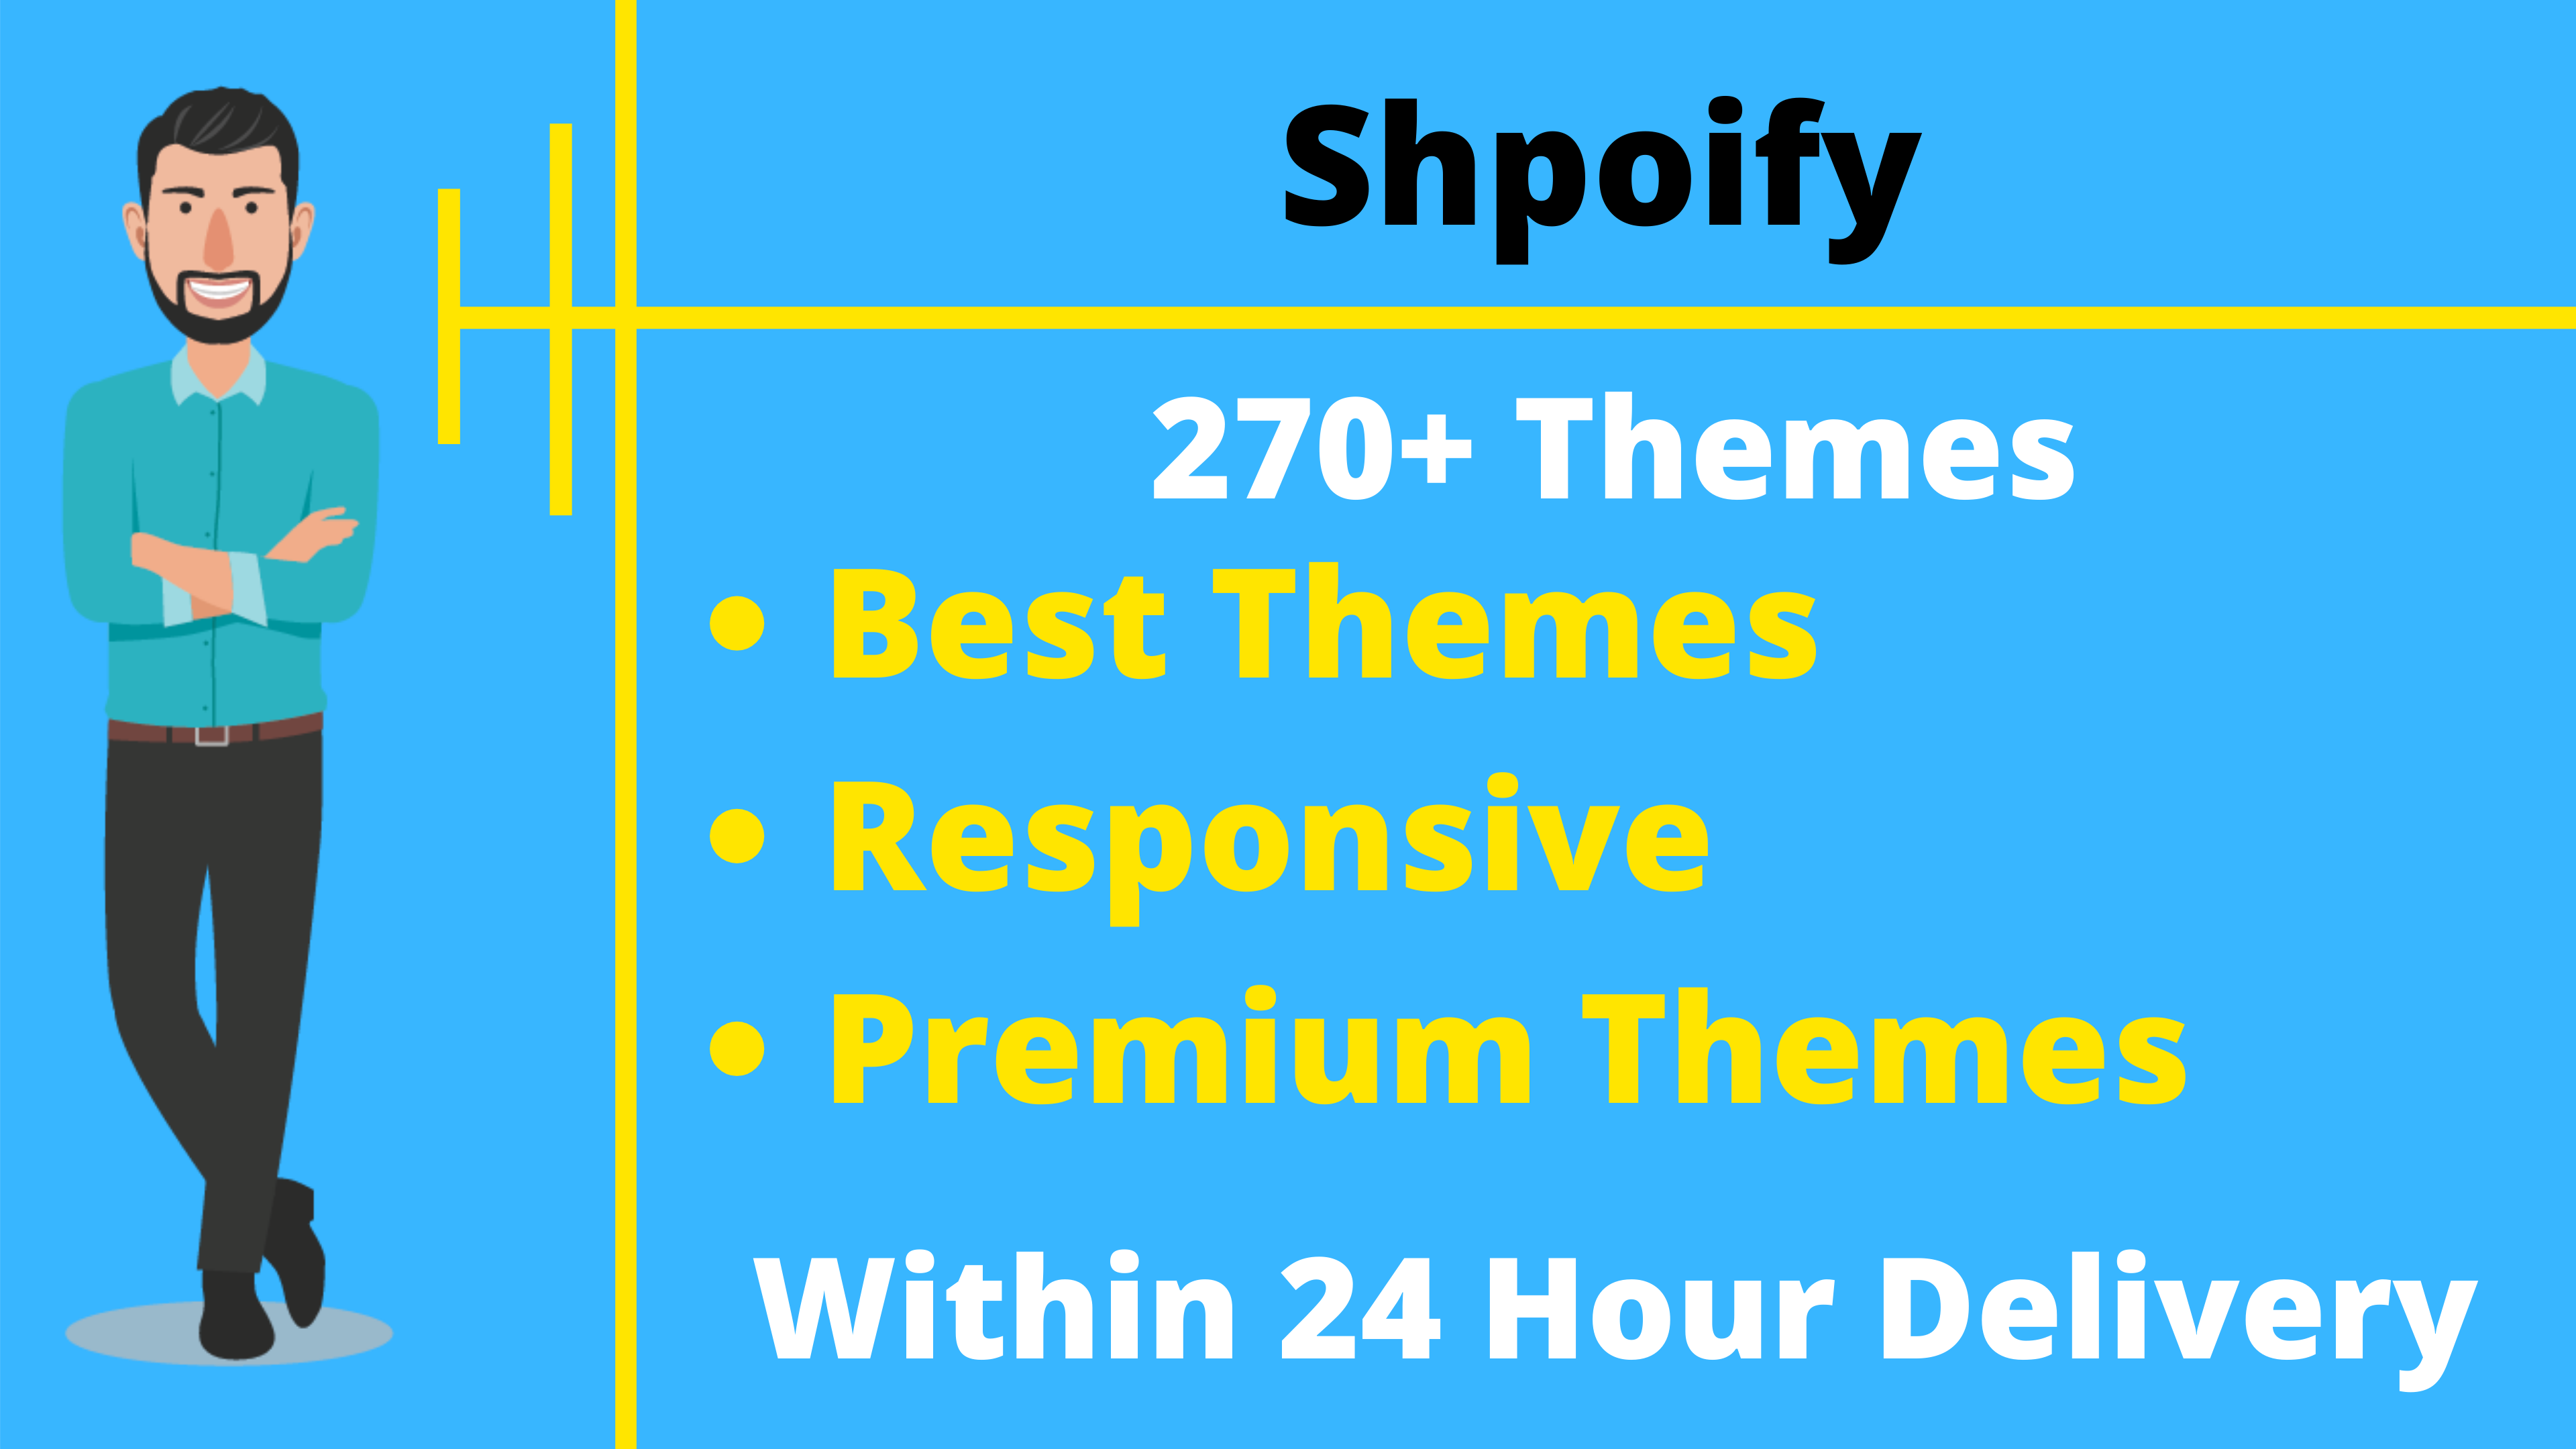 250+ Premium Shopify Store Themes & Templates